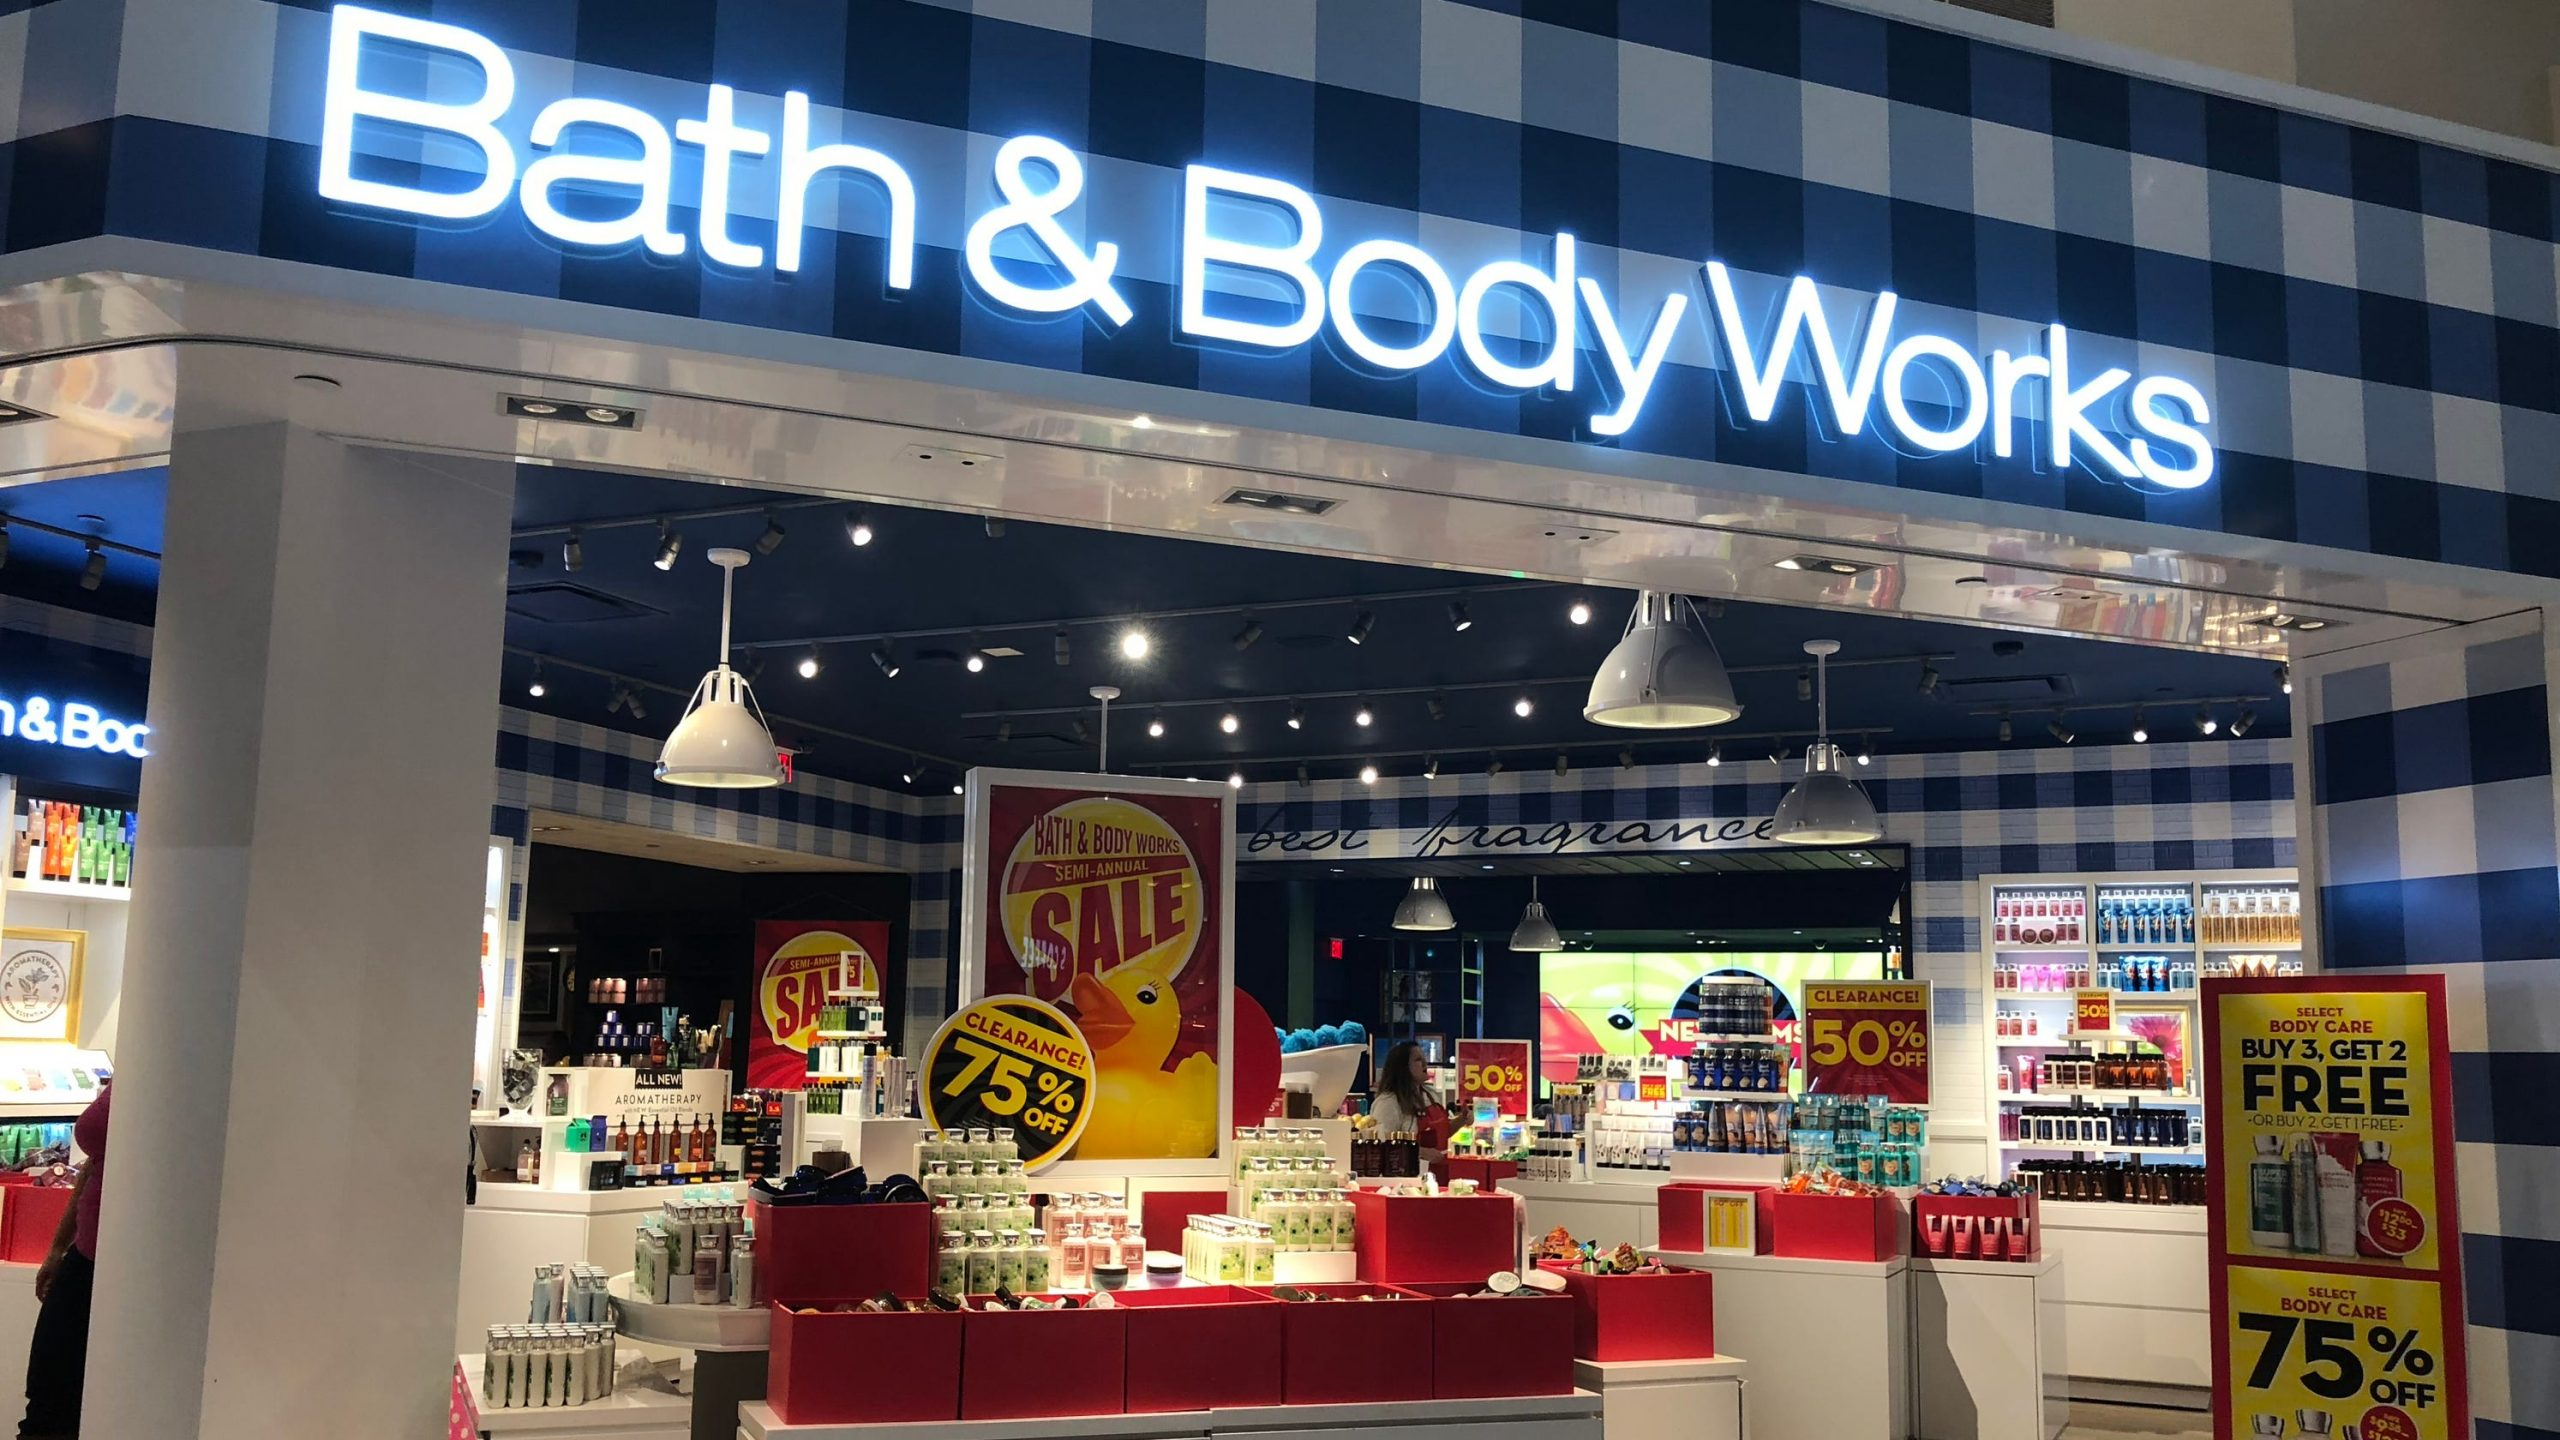 bath-body-works-annual-candle-day-sale-returns-friday-with-9-95-candles-lasts-longer-amid-covid-19.jpg